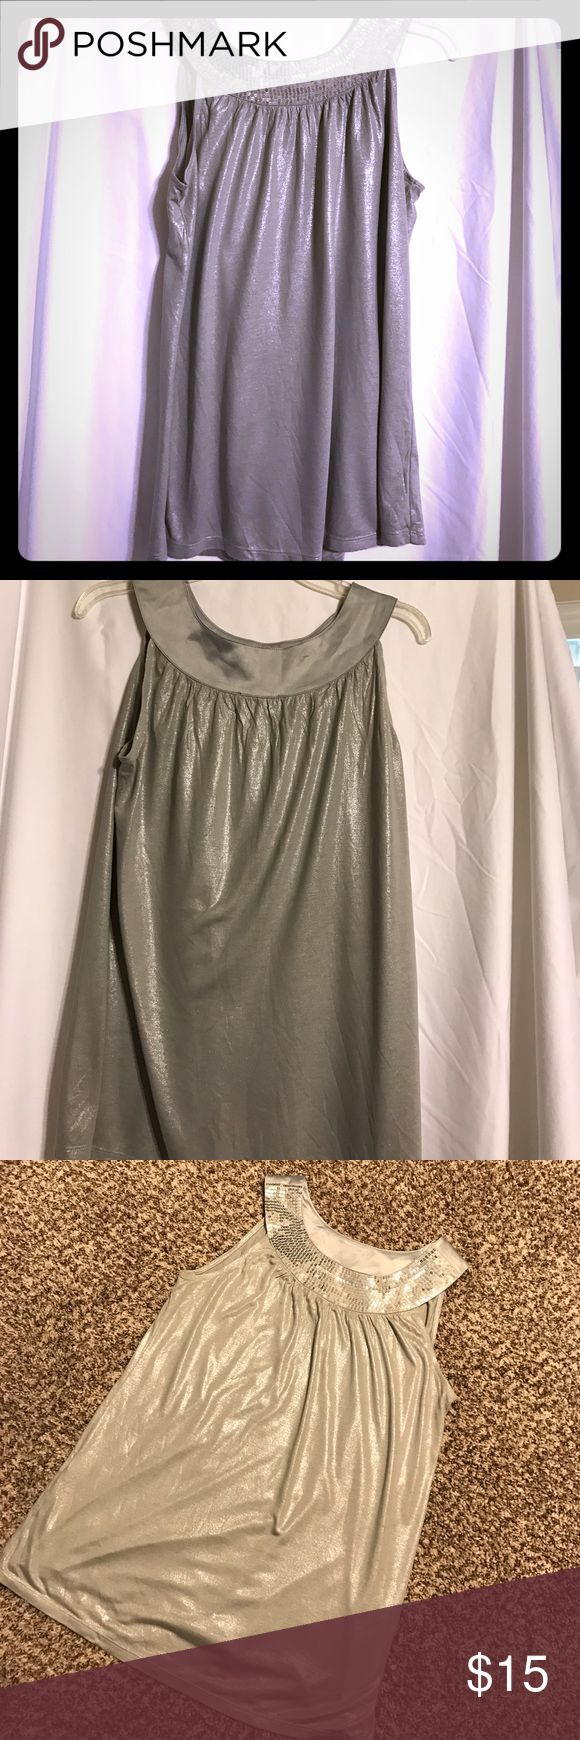 🌞CLEARANCE ITEM🌞 Express Party Top Shiny silver top with sequined neckline Express Tops Tank Tops